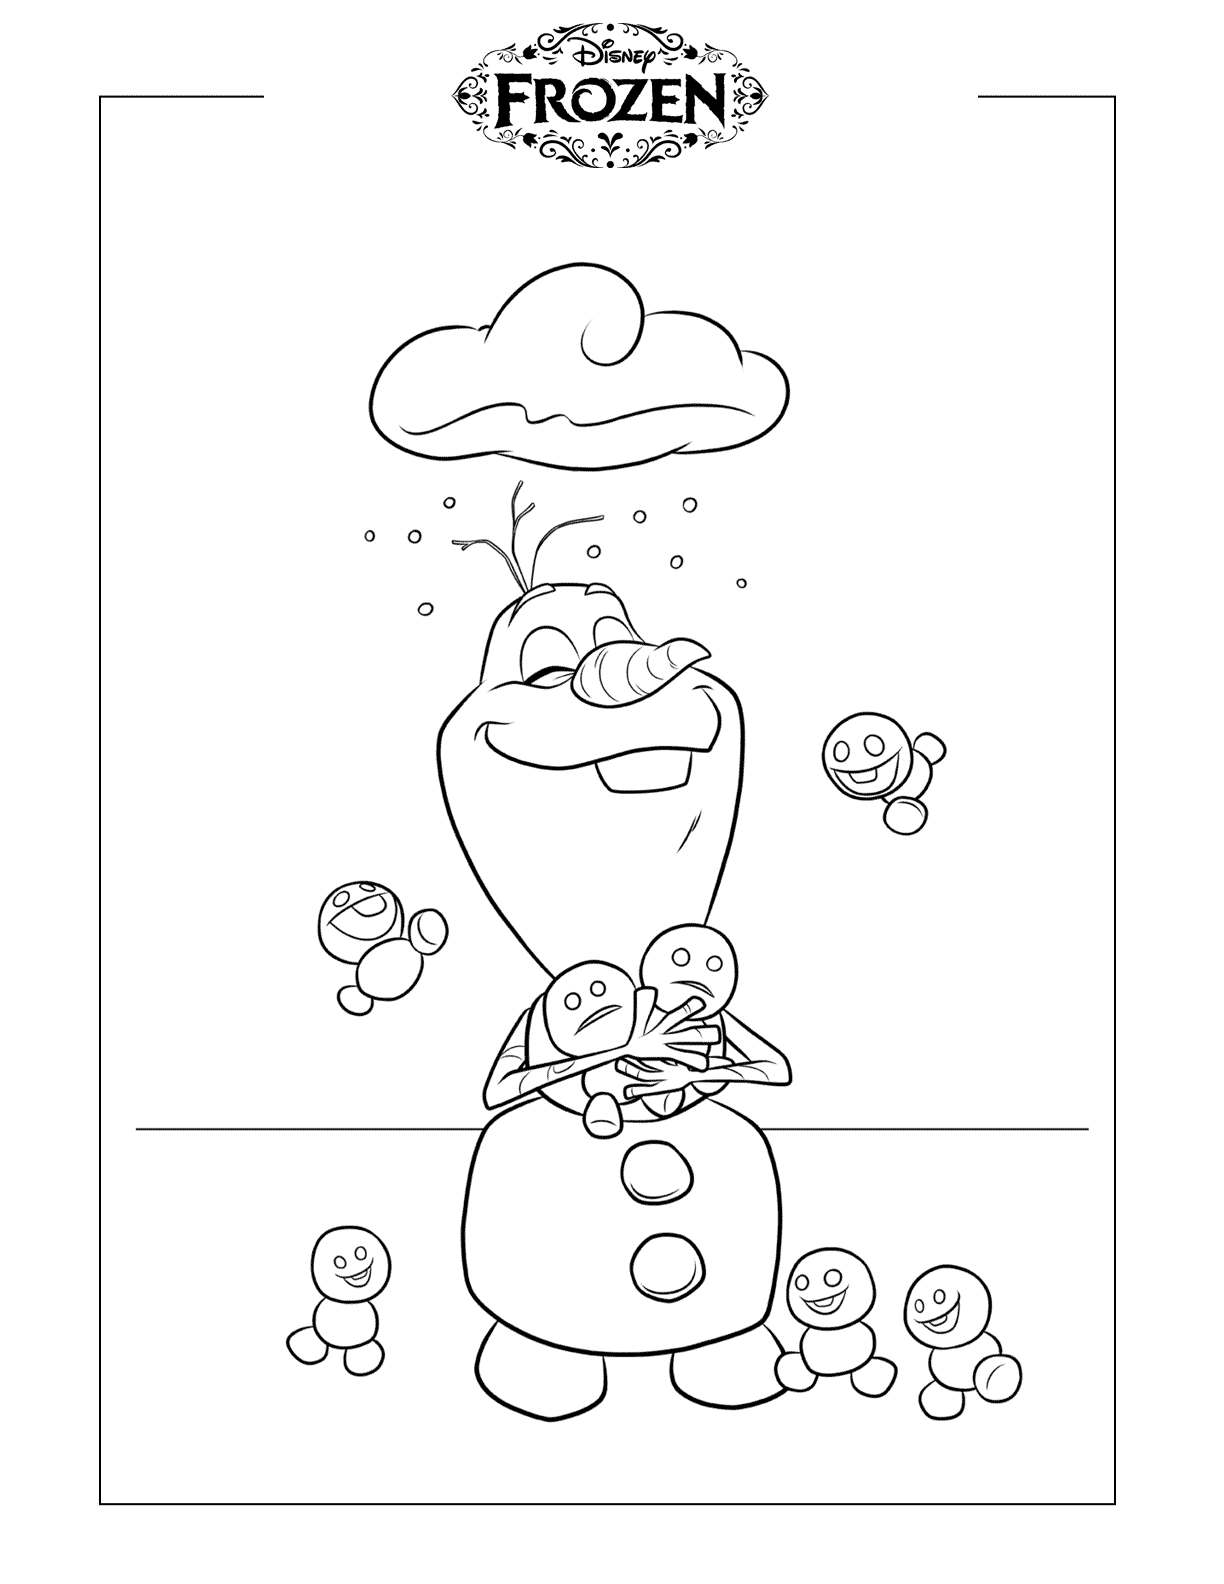 Disney Babies Coloring Pages | Woo! Jr. Kids Activities | 1584x1224